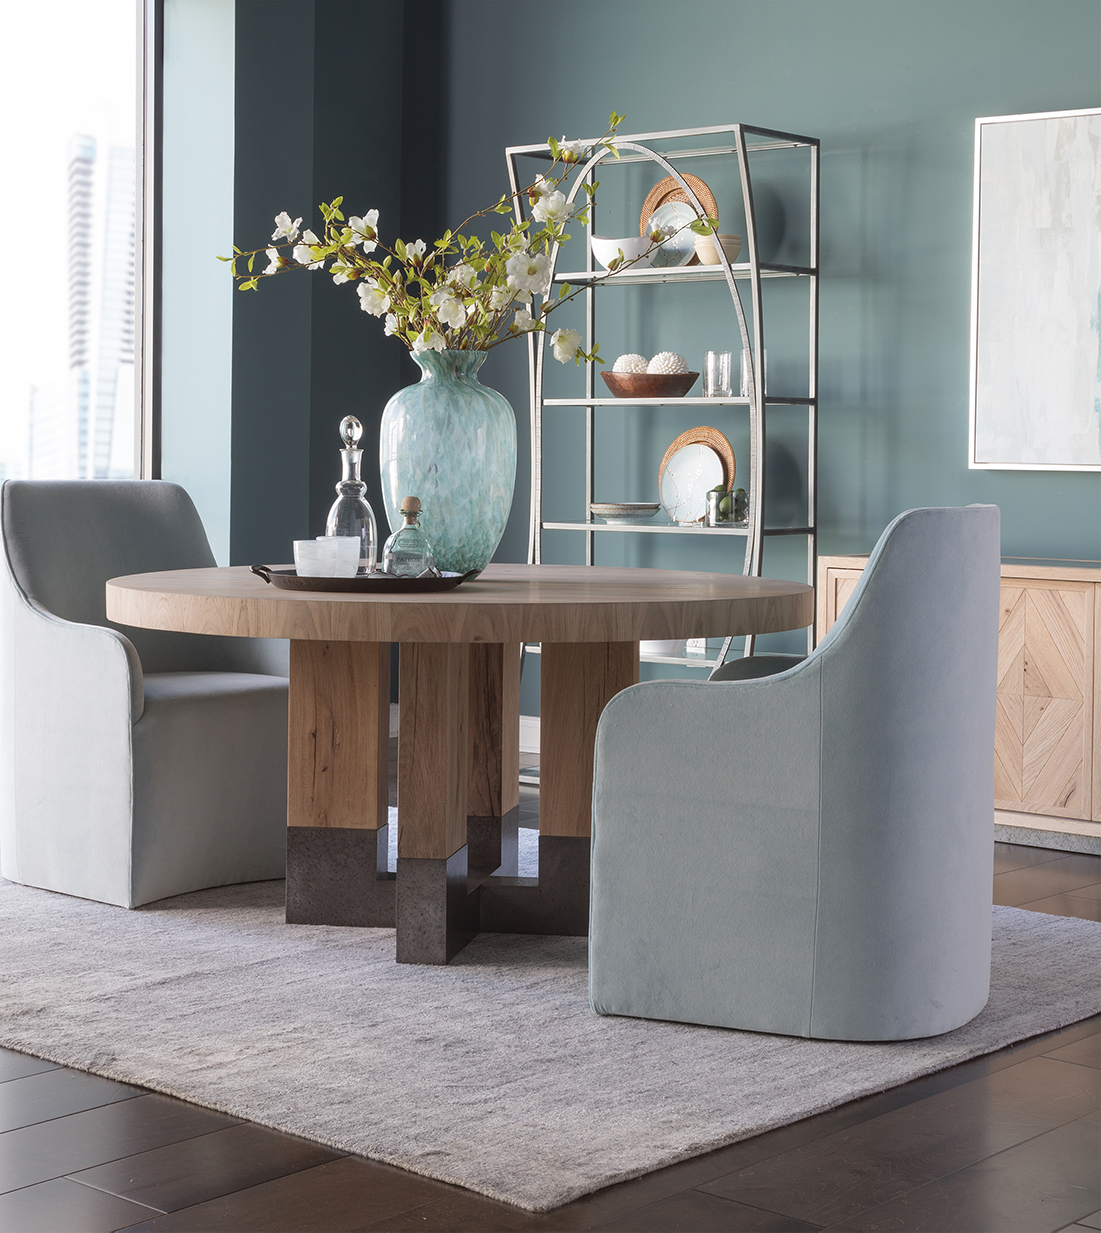 Lexington Home Brands_Verite Round Dining Table 2_int_products